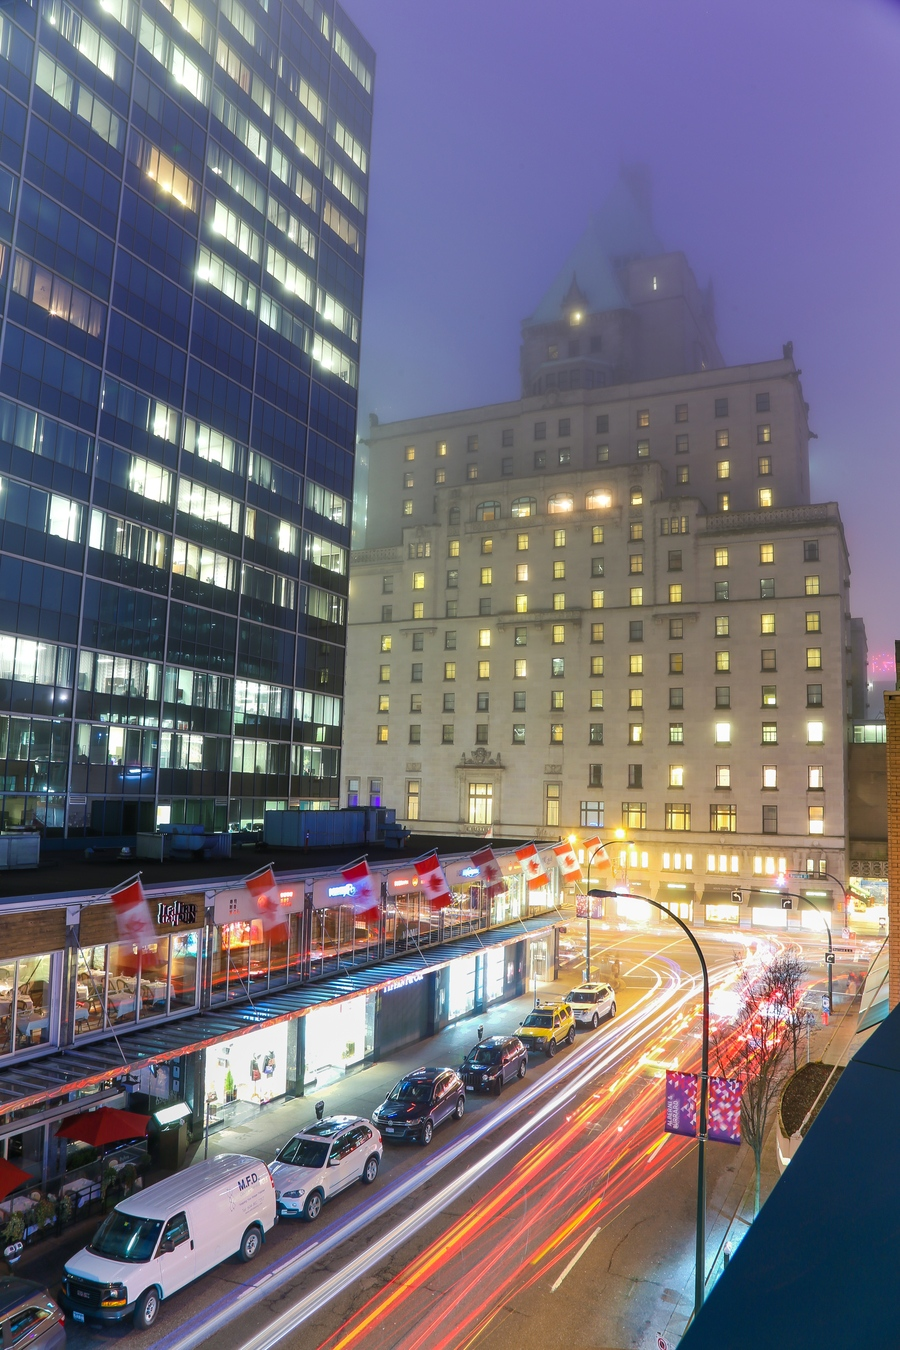 Eerie beauty: Capturing Vancouver by night | CTV Vancouver ...